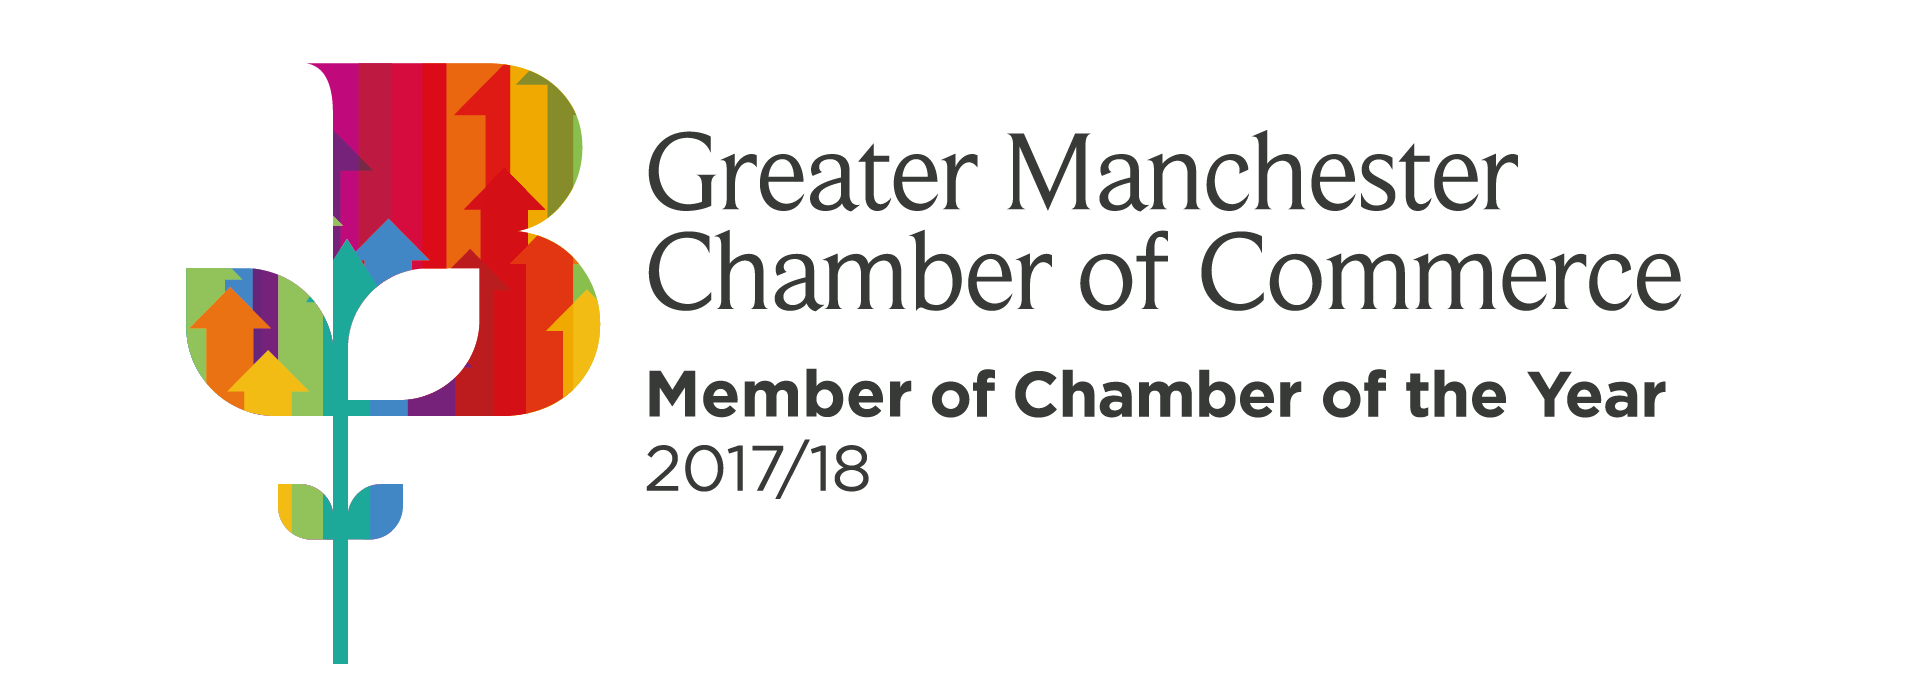 Greater Manchester Chamber of Commerce Member